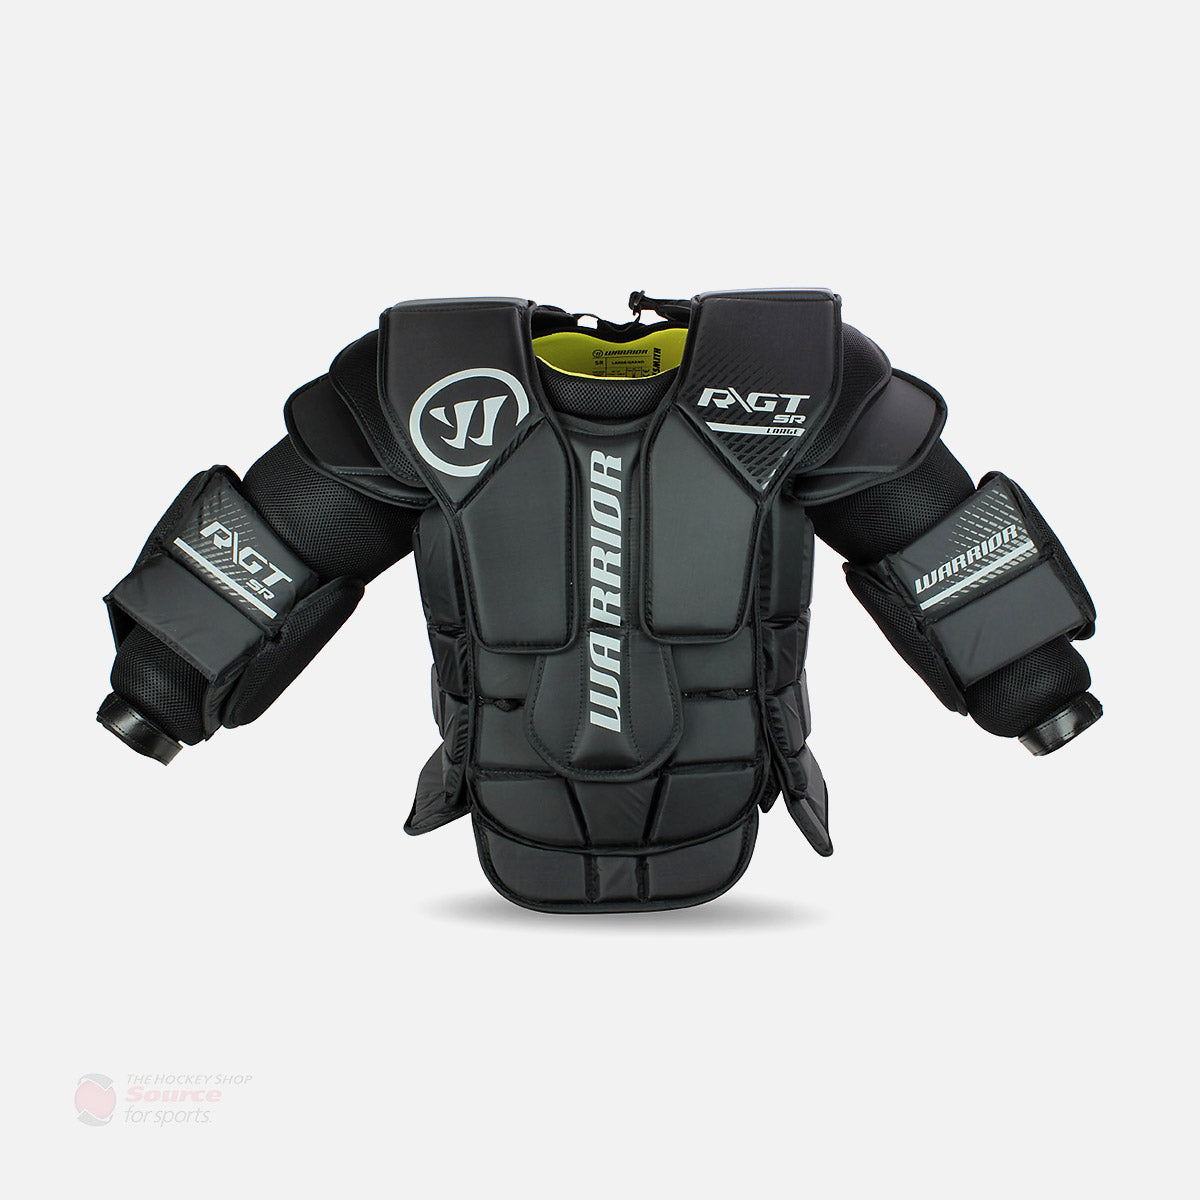 Warrior Ritual GT Senior Chest & Arm Protectors